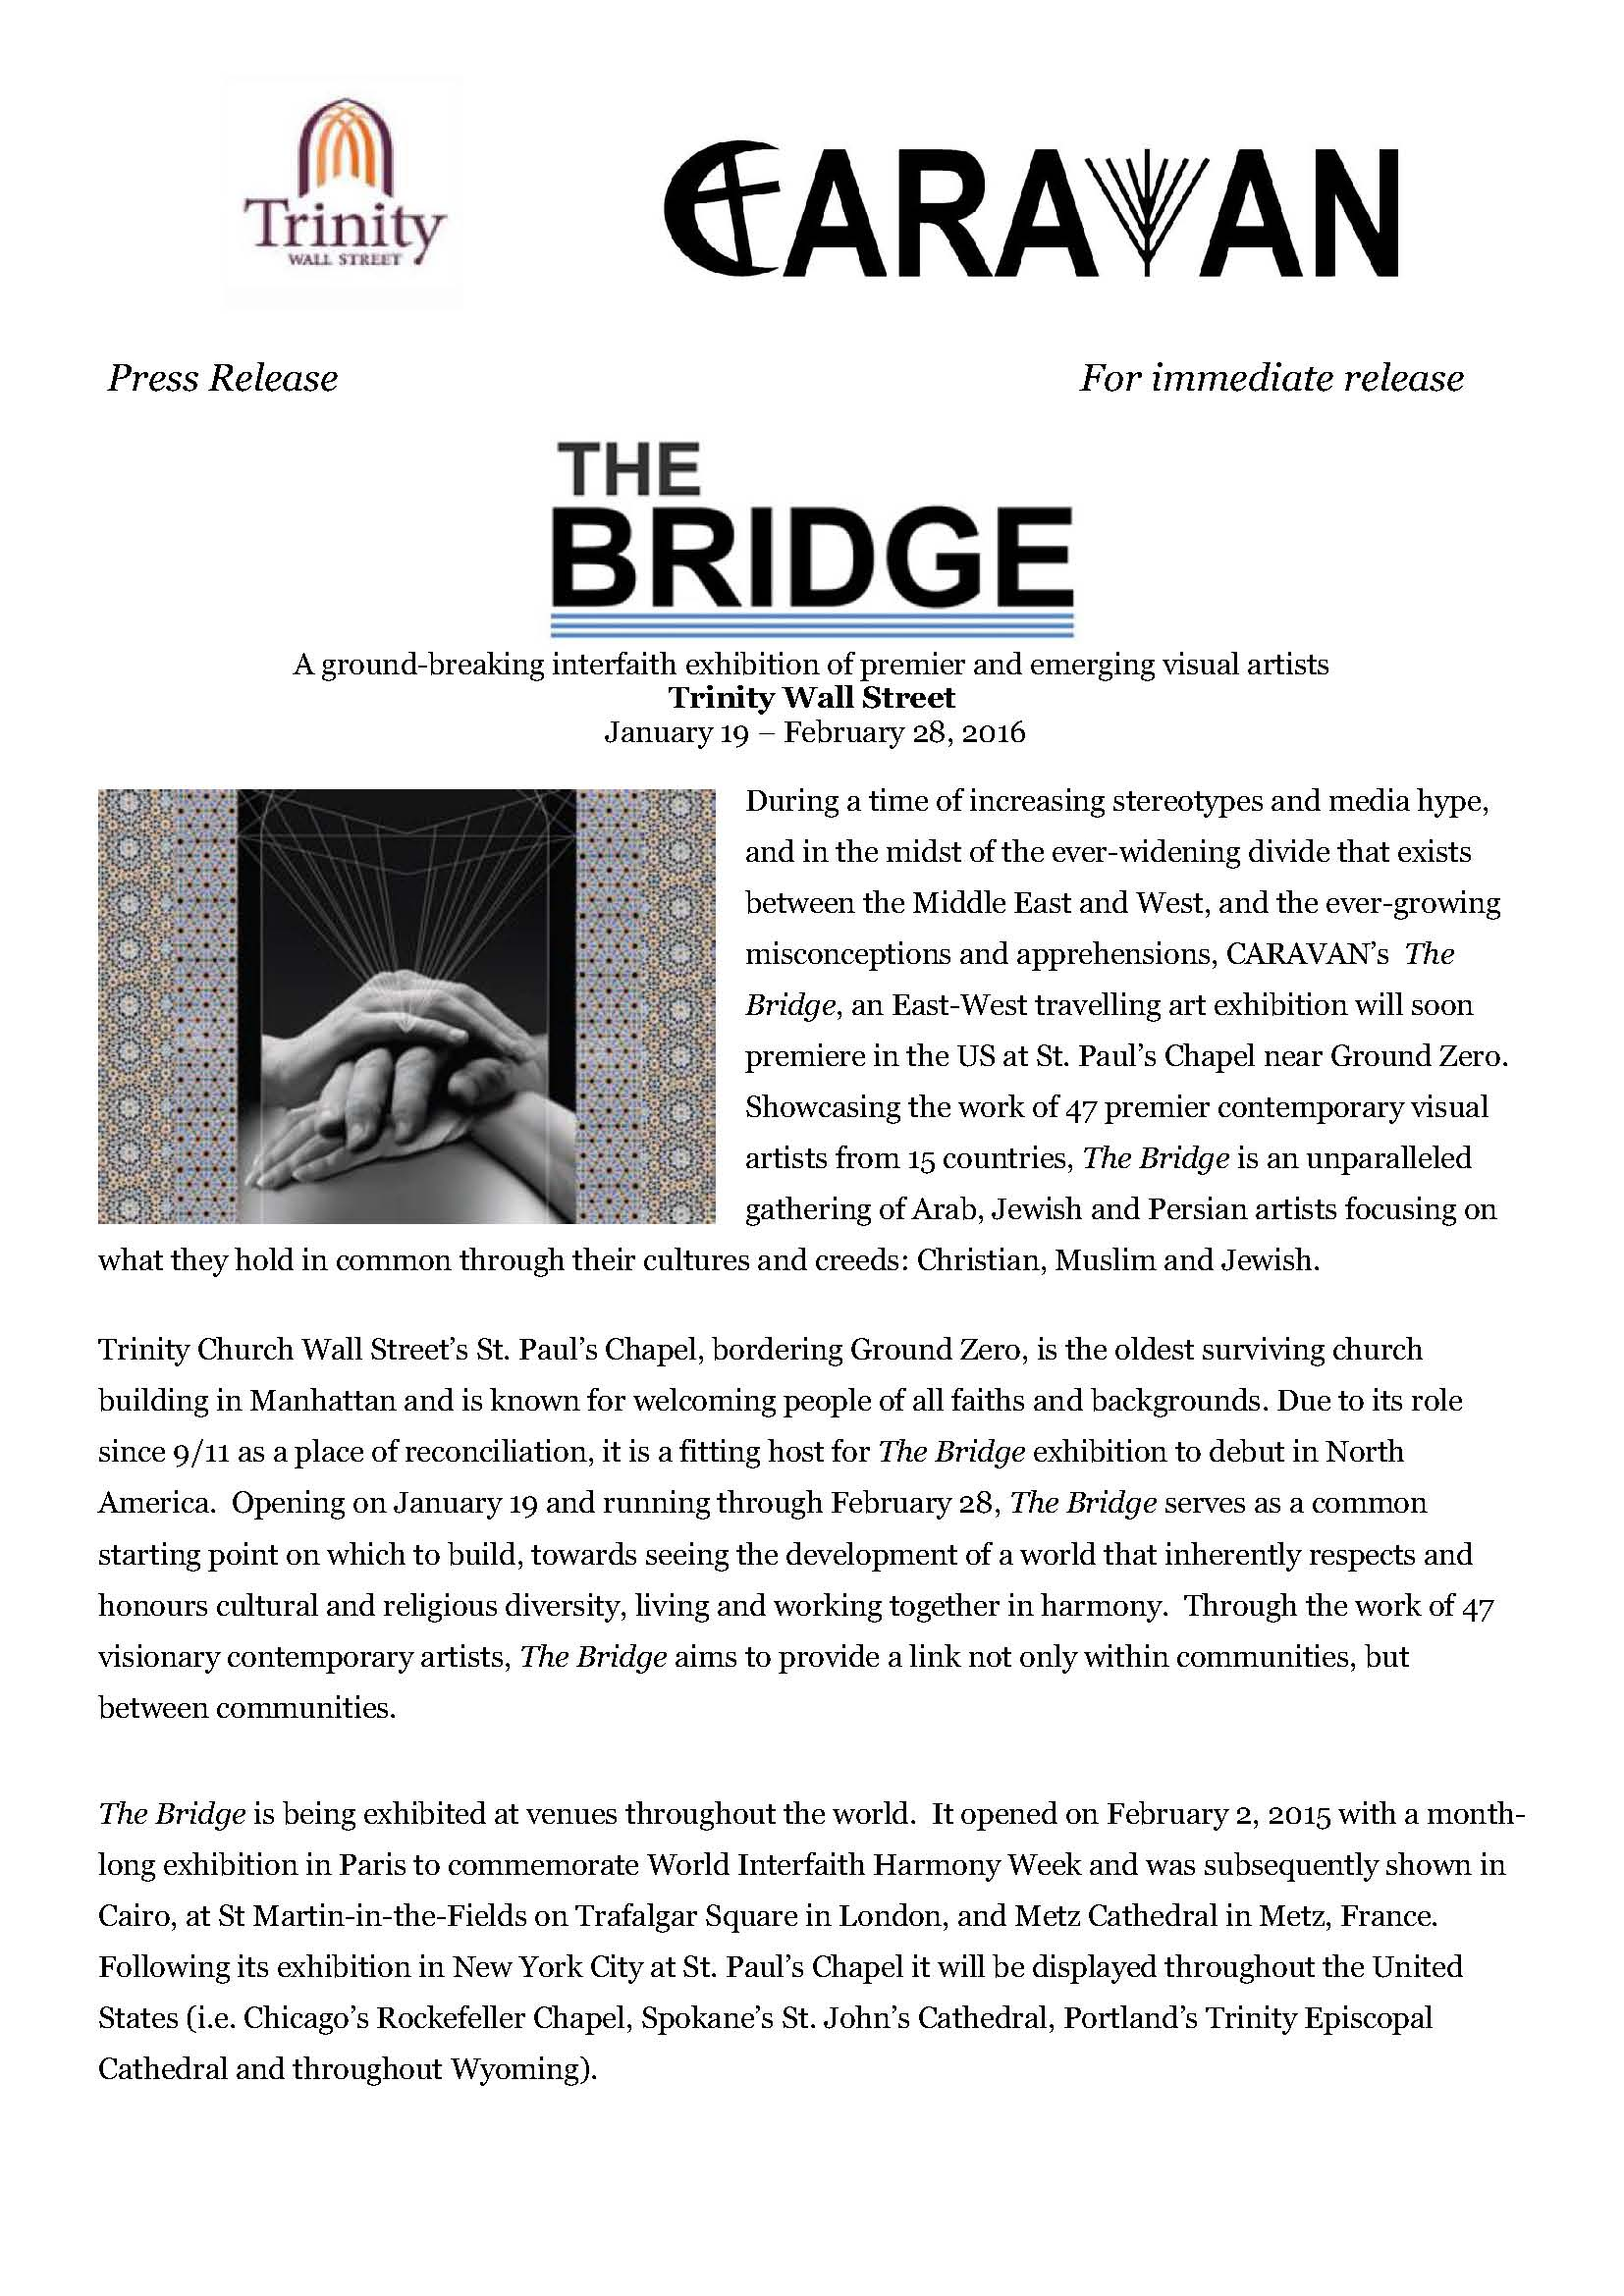 Press Release-The Bridge new york_Page_1